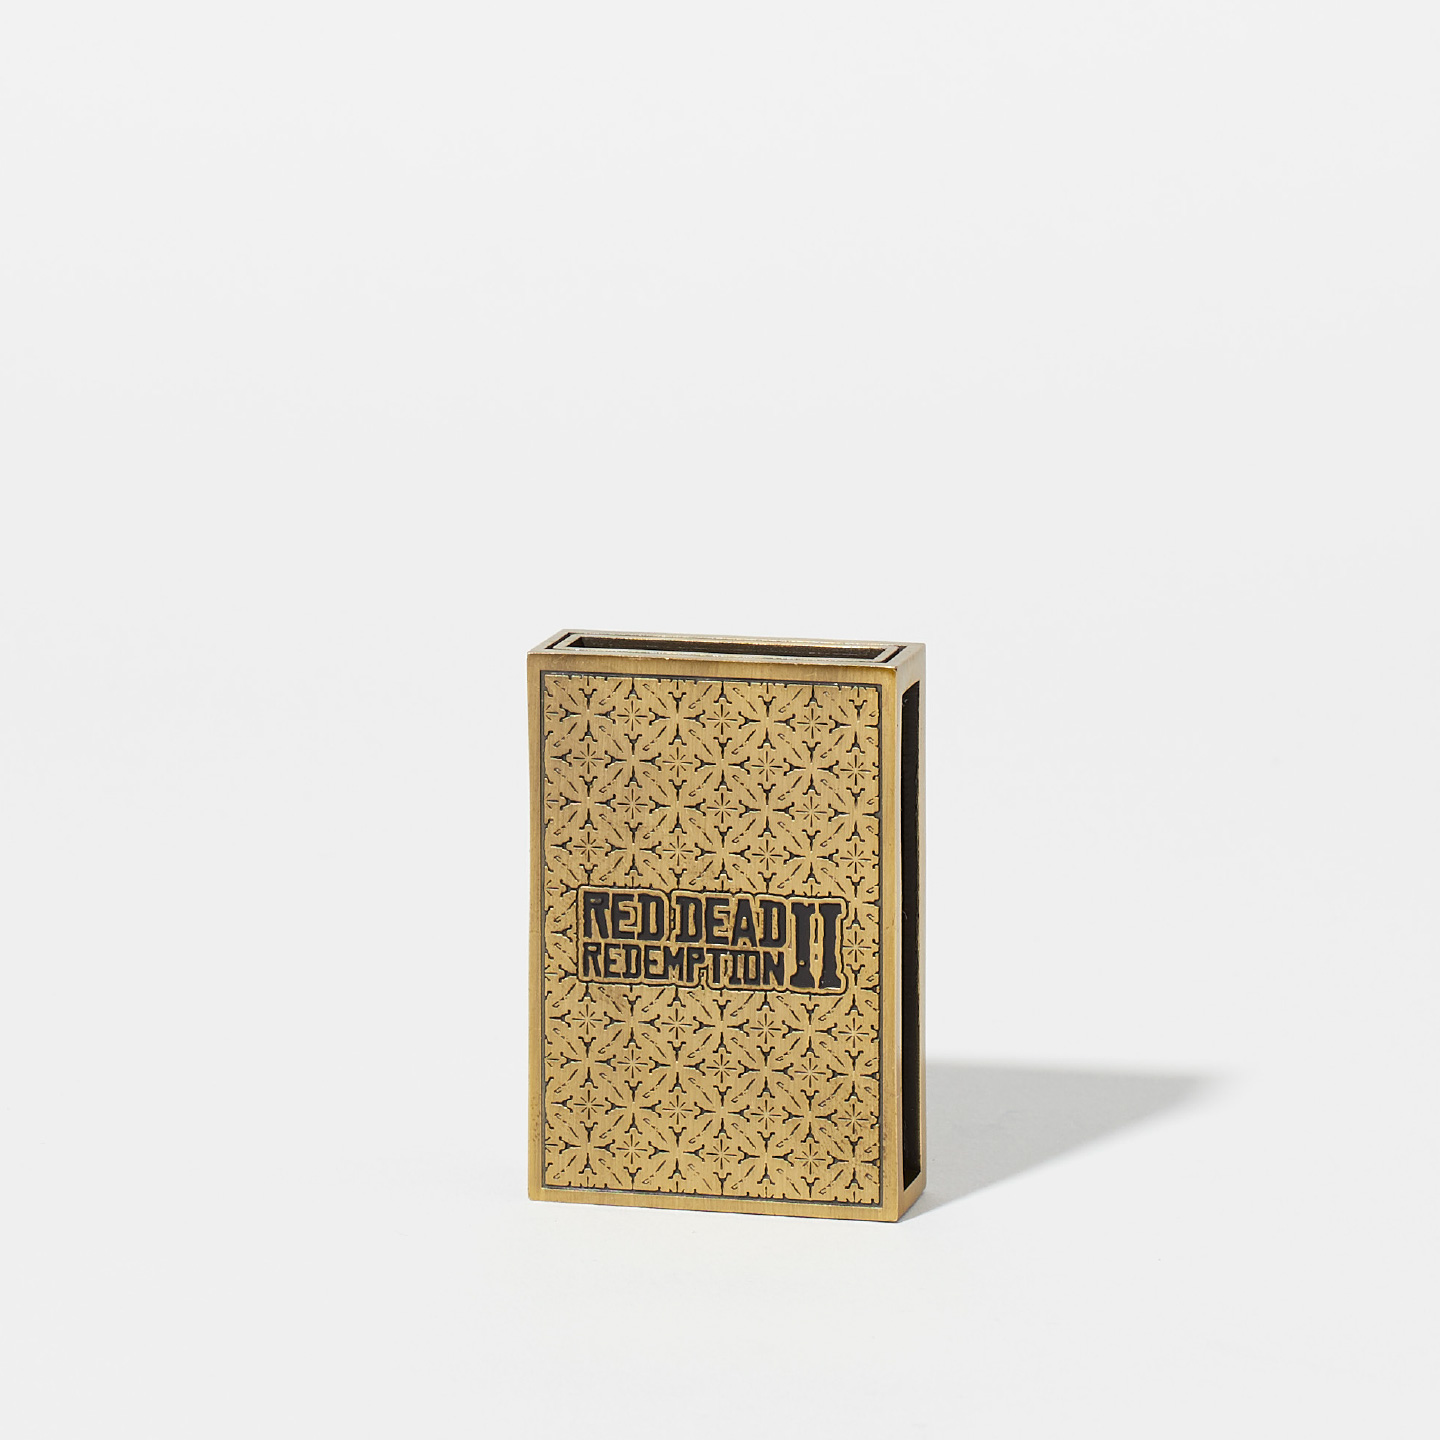 Red Dead Redemption 2 Engraved Match Box Slipcase